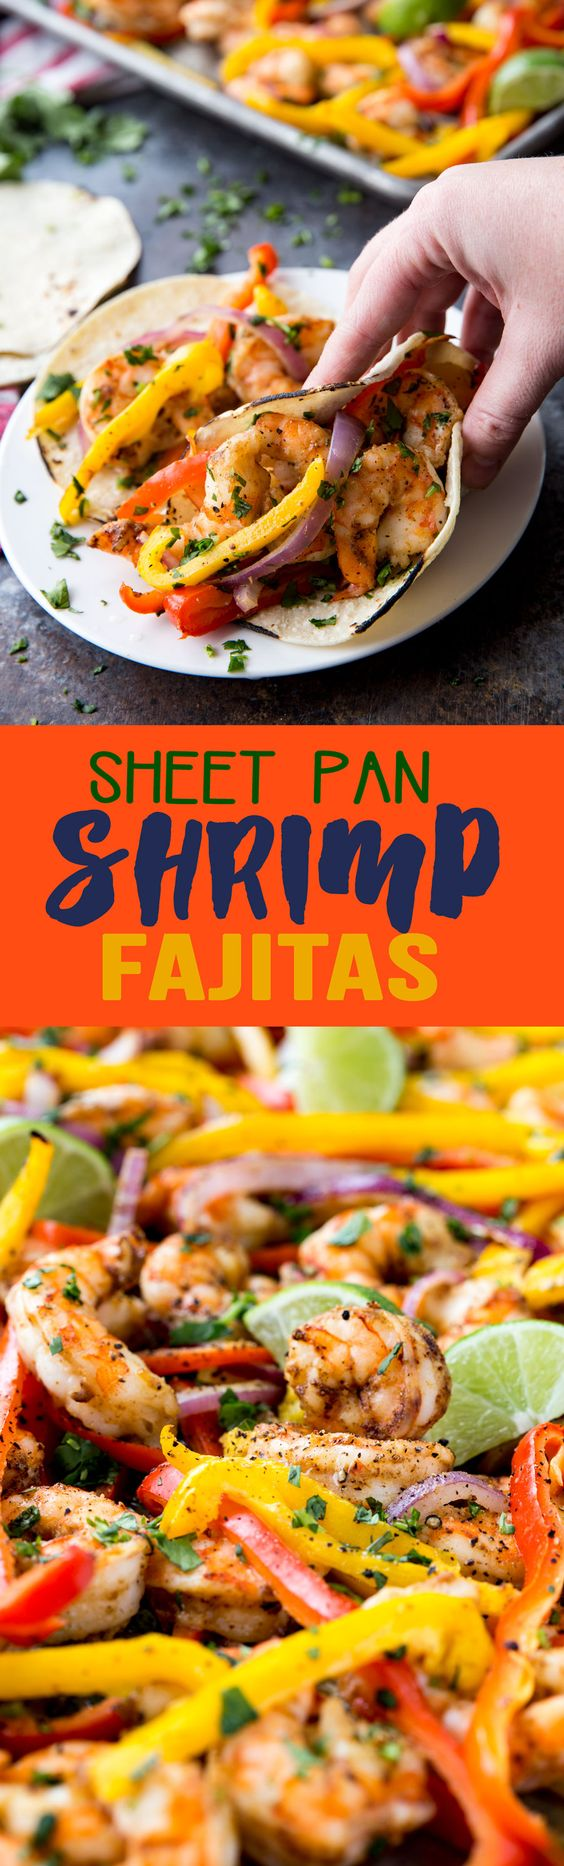 Sheet Pan Shrimp Fajitas: